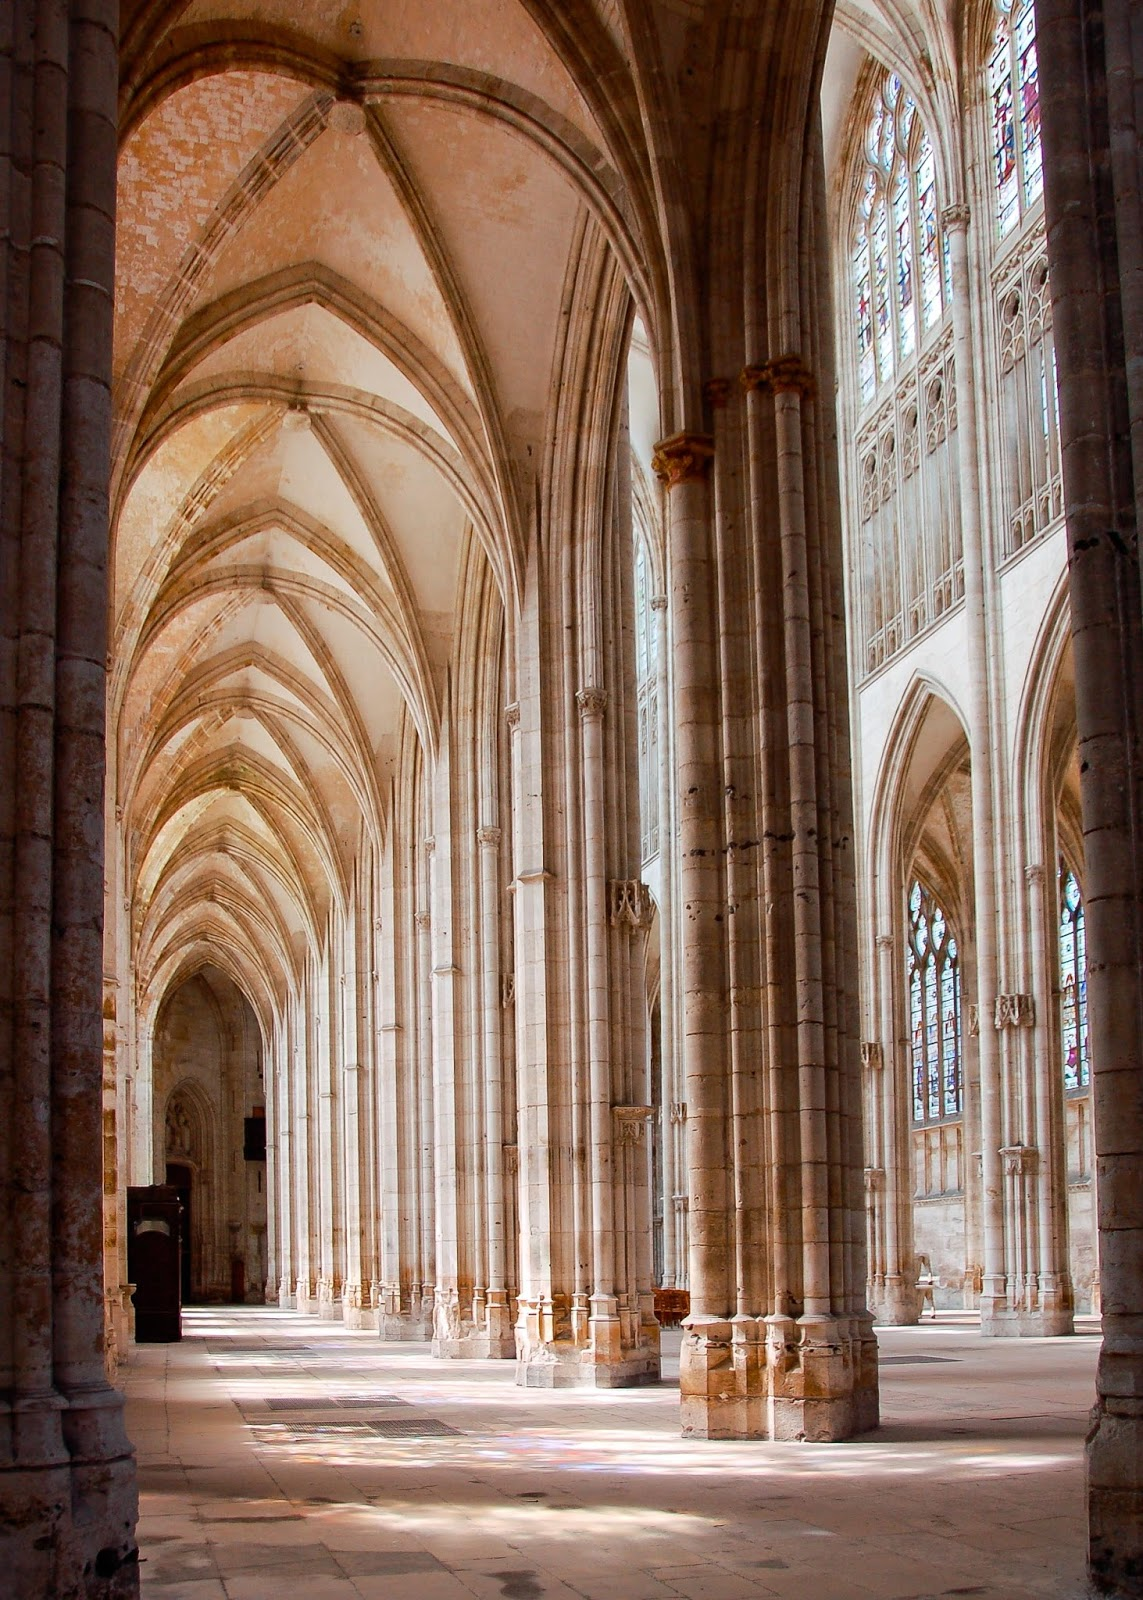 Archi-trouve*: Gothic Architecture: Let There Be (More) Light